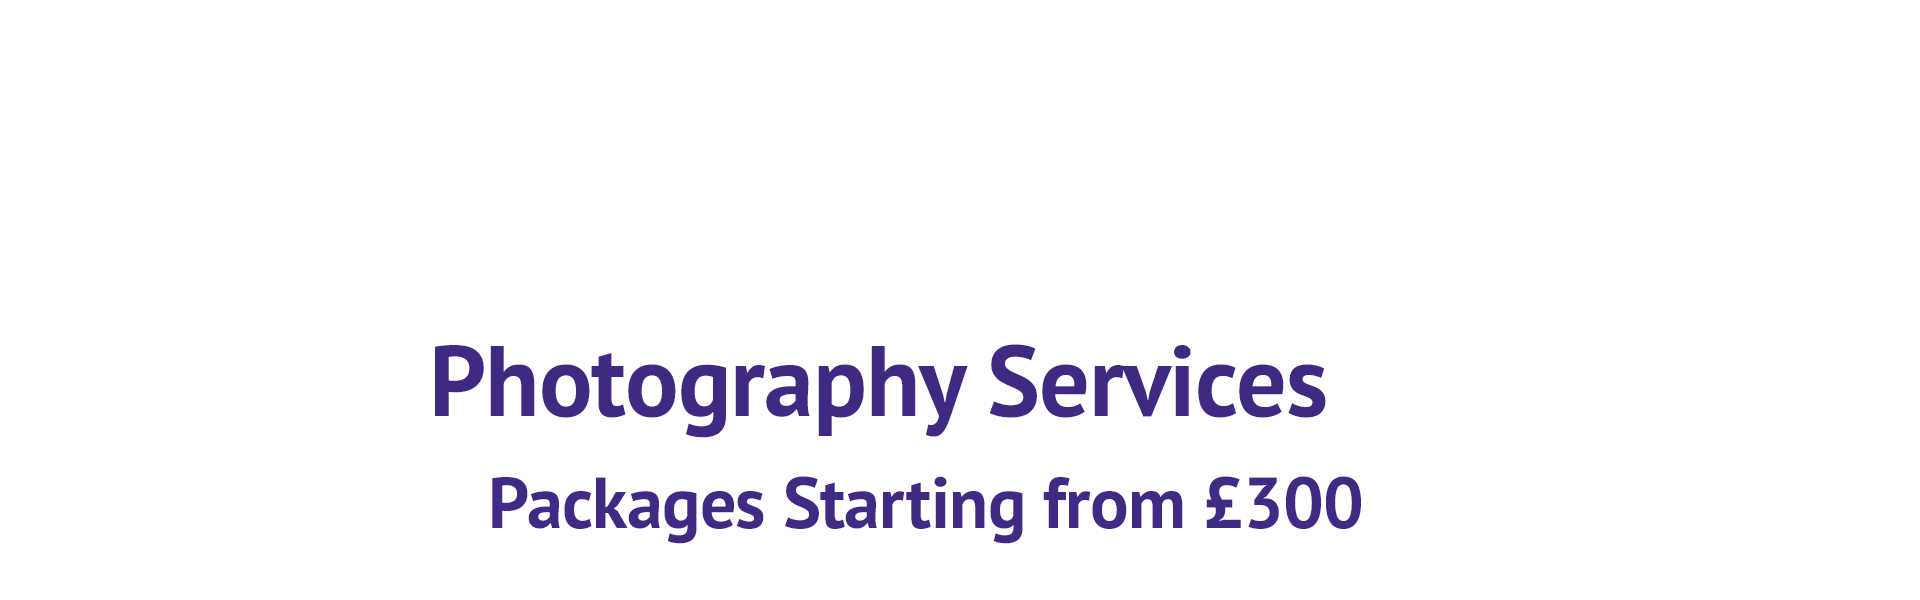 Photography Services Packages Starting from £300